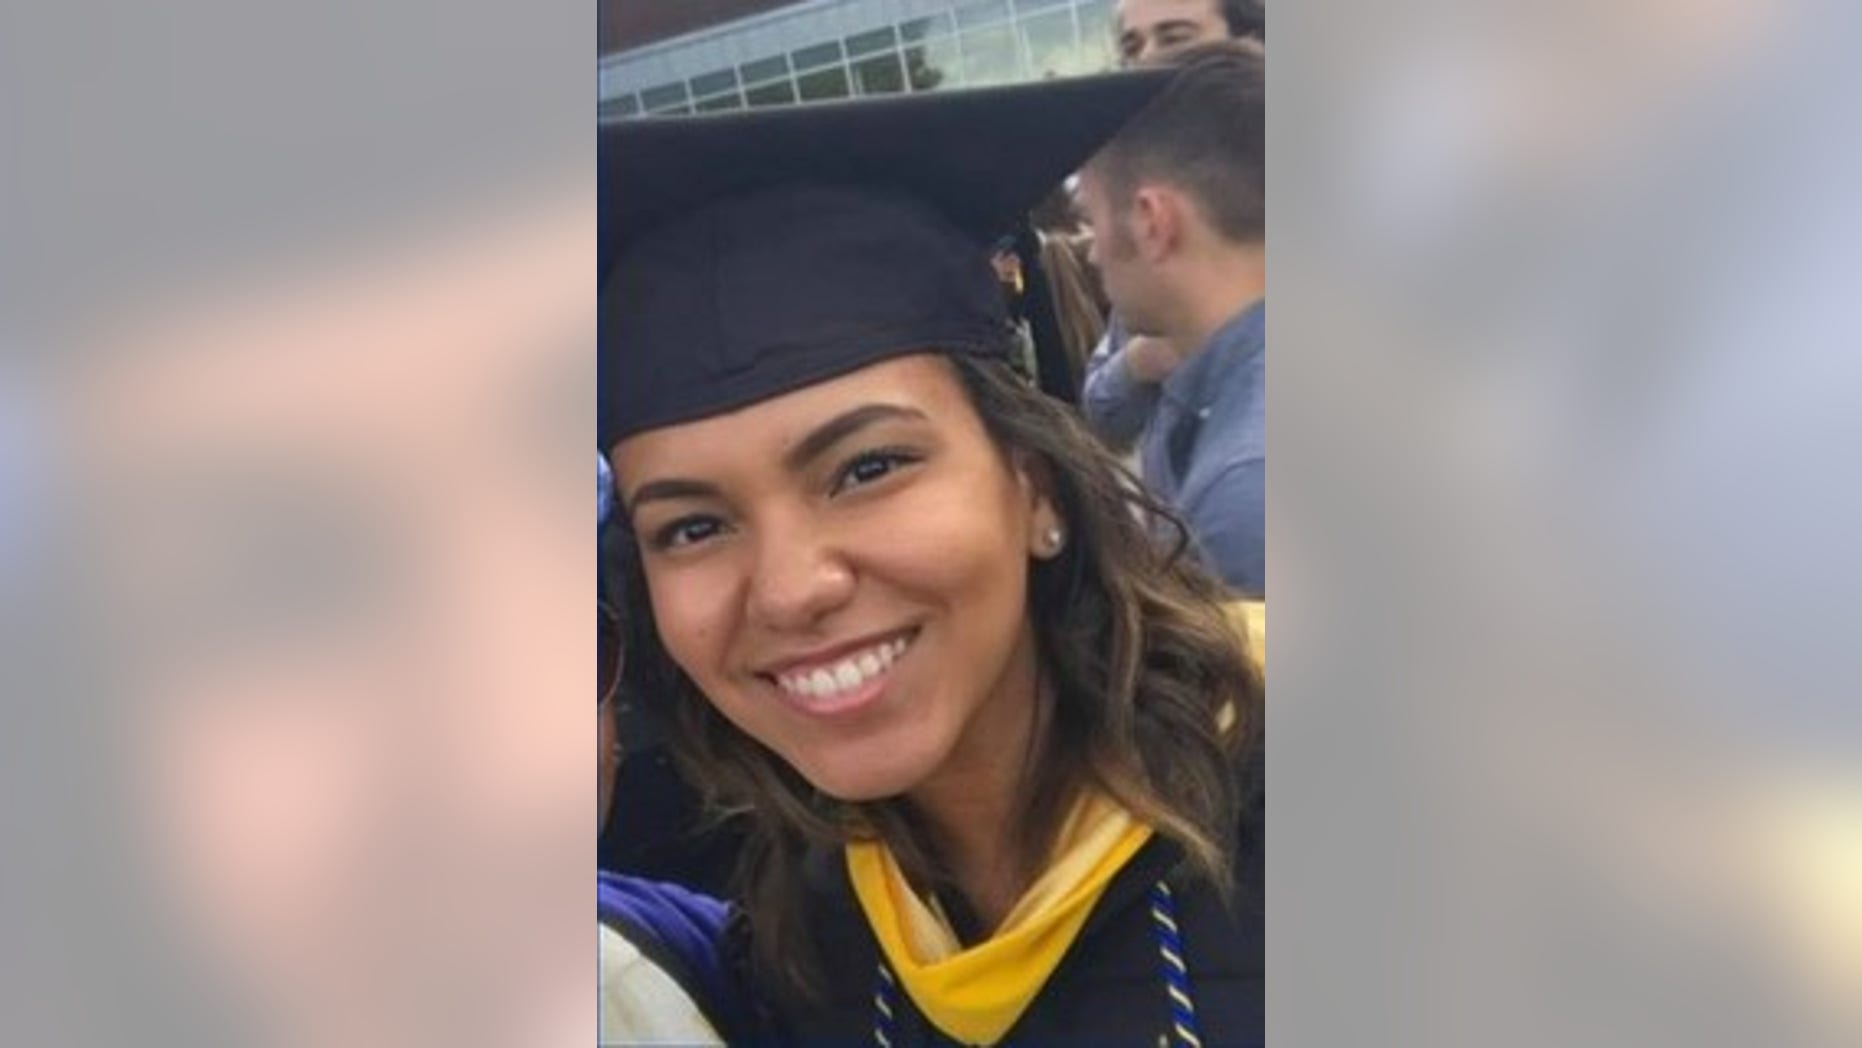 Virginia State Police said Marisa Harris, 22, was killed Saturday when a 12-year-old boy attempting suicide jumped from an overpass and landed on her vehicle, killing her.